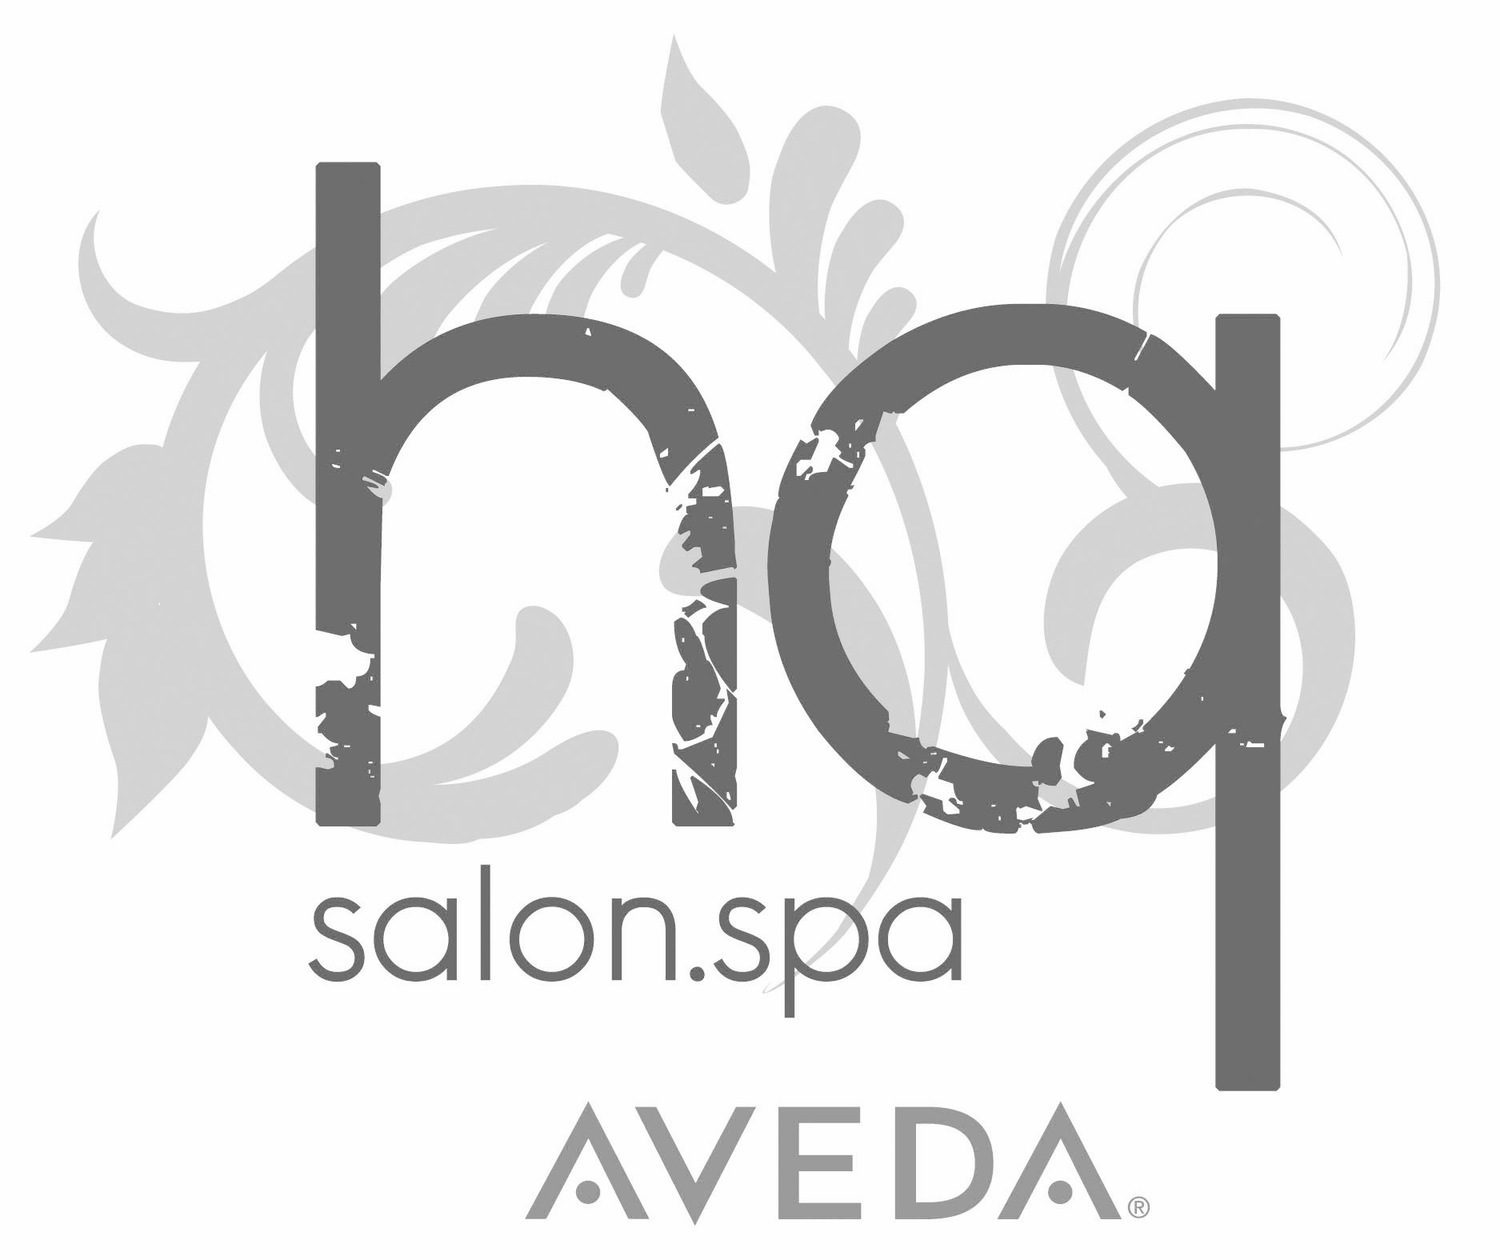 Aveda Hair Salon and Spa in Lorain, Westlake, Wesley Chapel, Florida